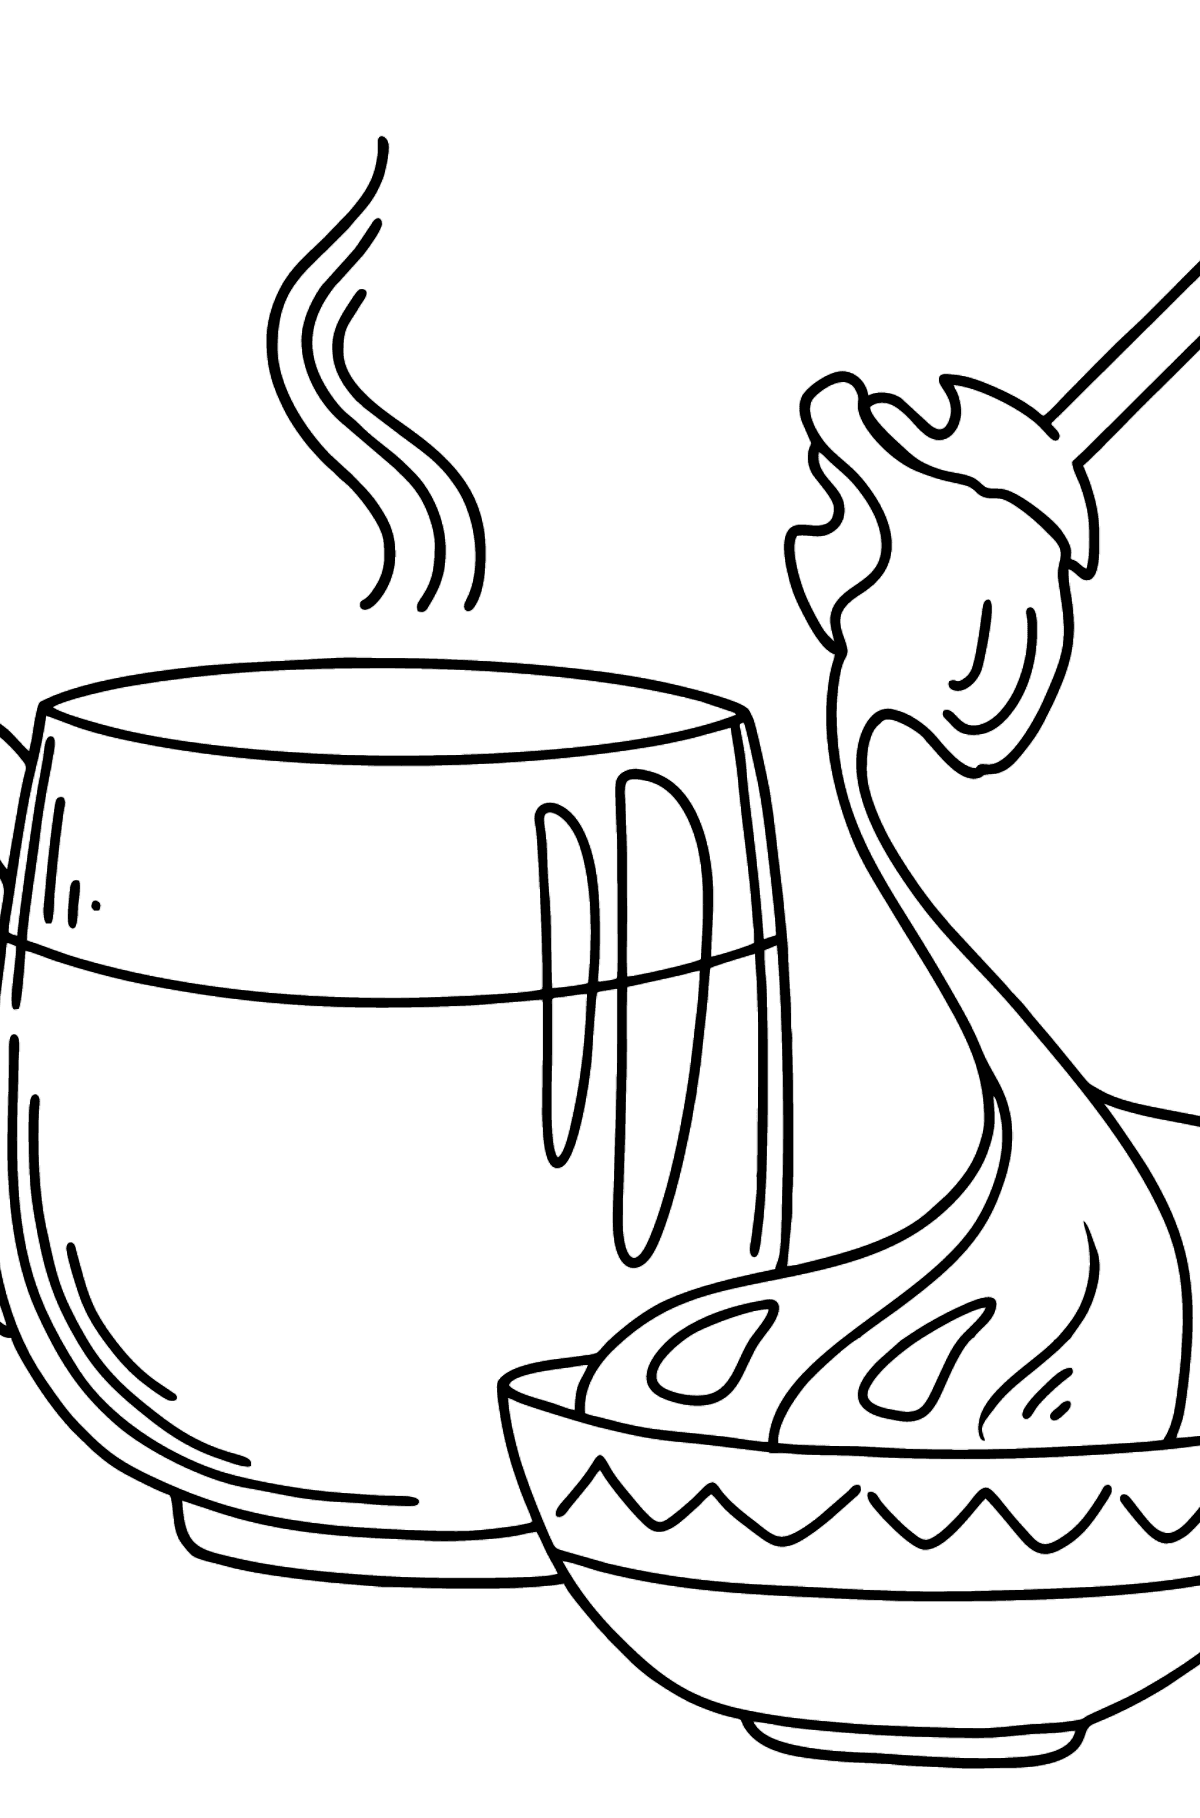 Milk with Honey coloring page - Coloring Pages for Kids